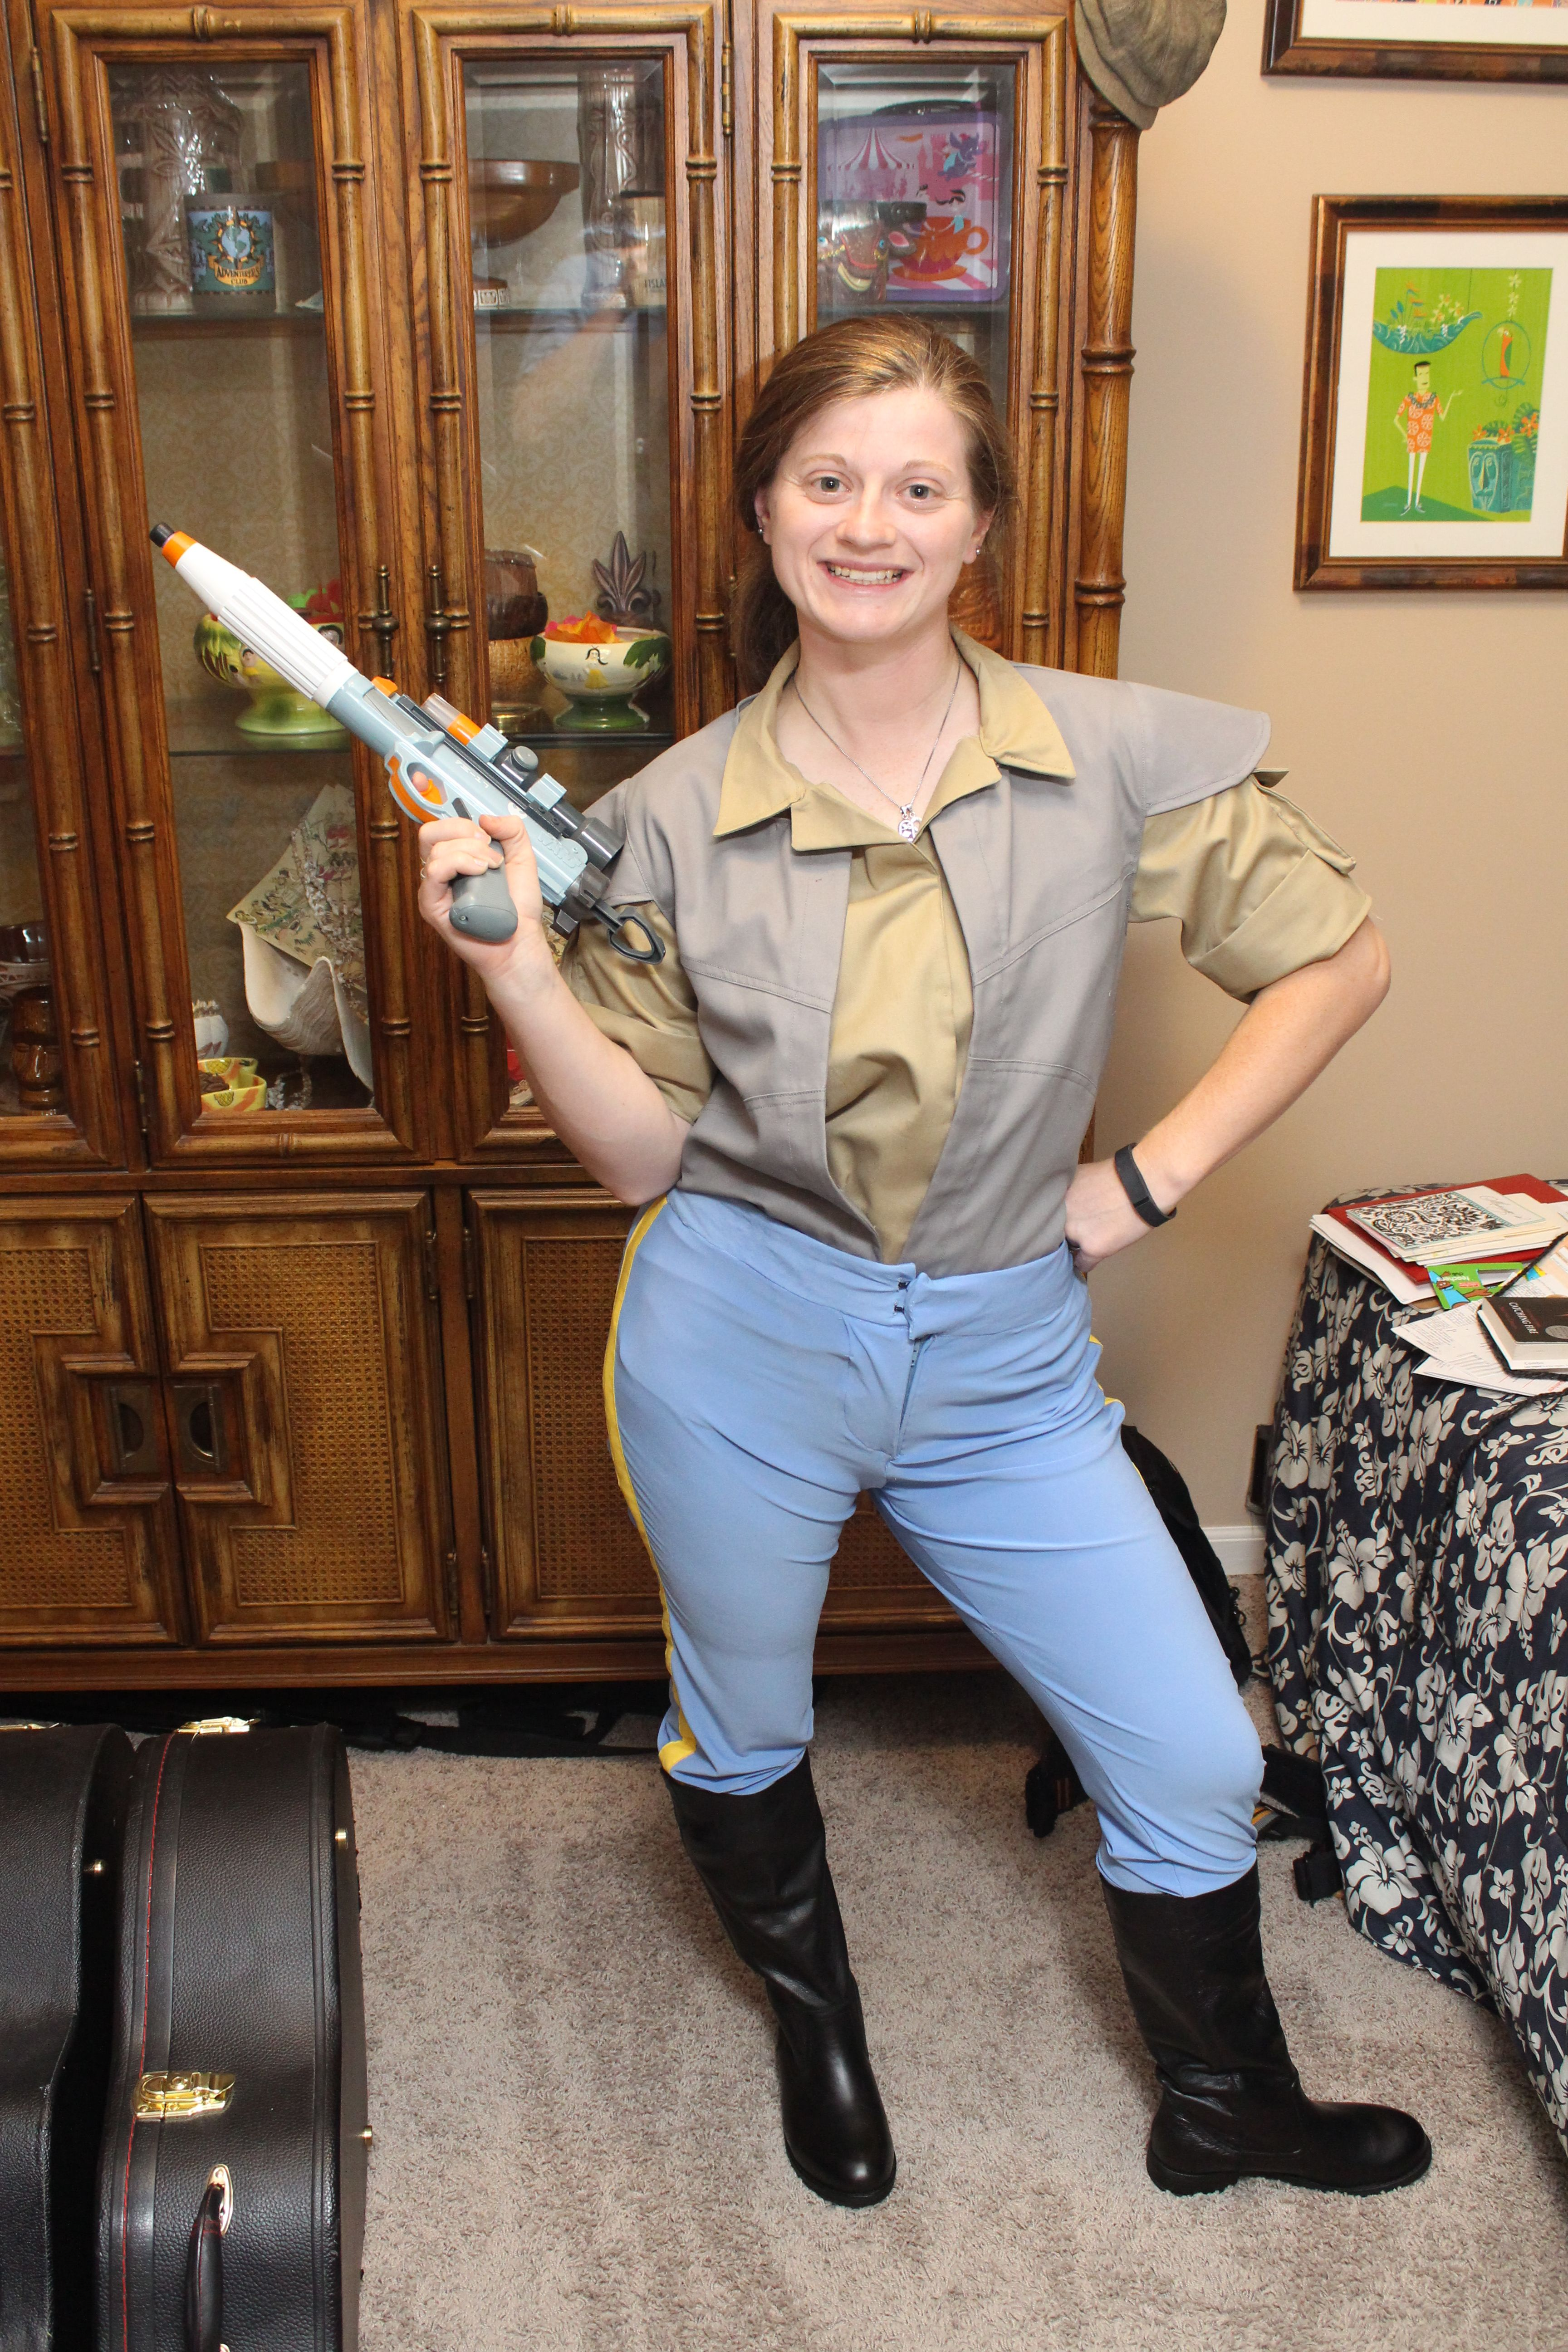 f0ddfa23 More updated Endor Leia costume with boots, pants, shirt, and vest. The  vest still needs a bottom closure to keep it more closed up at the bottom.